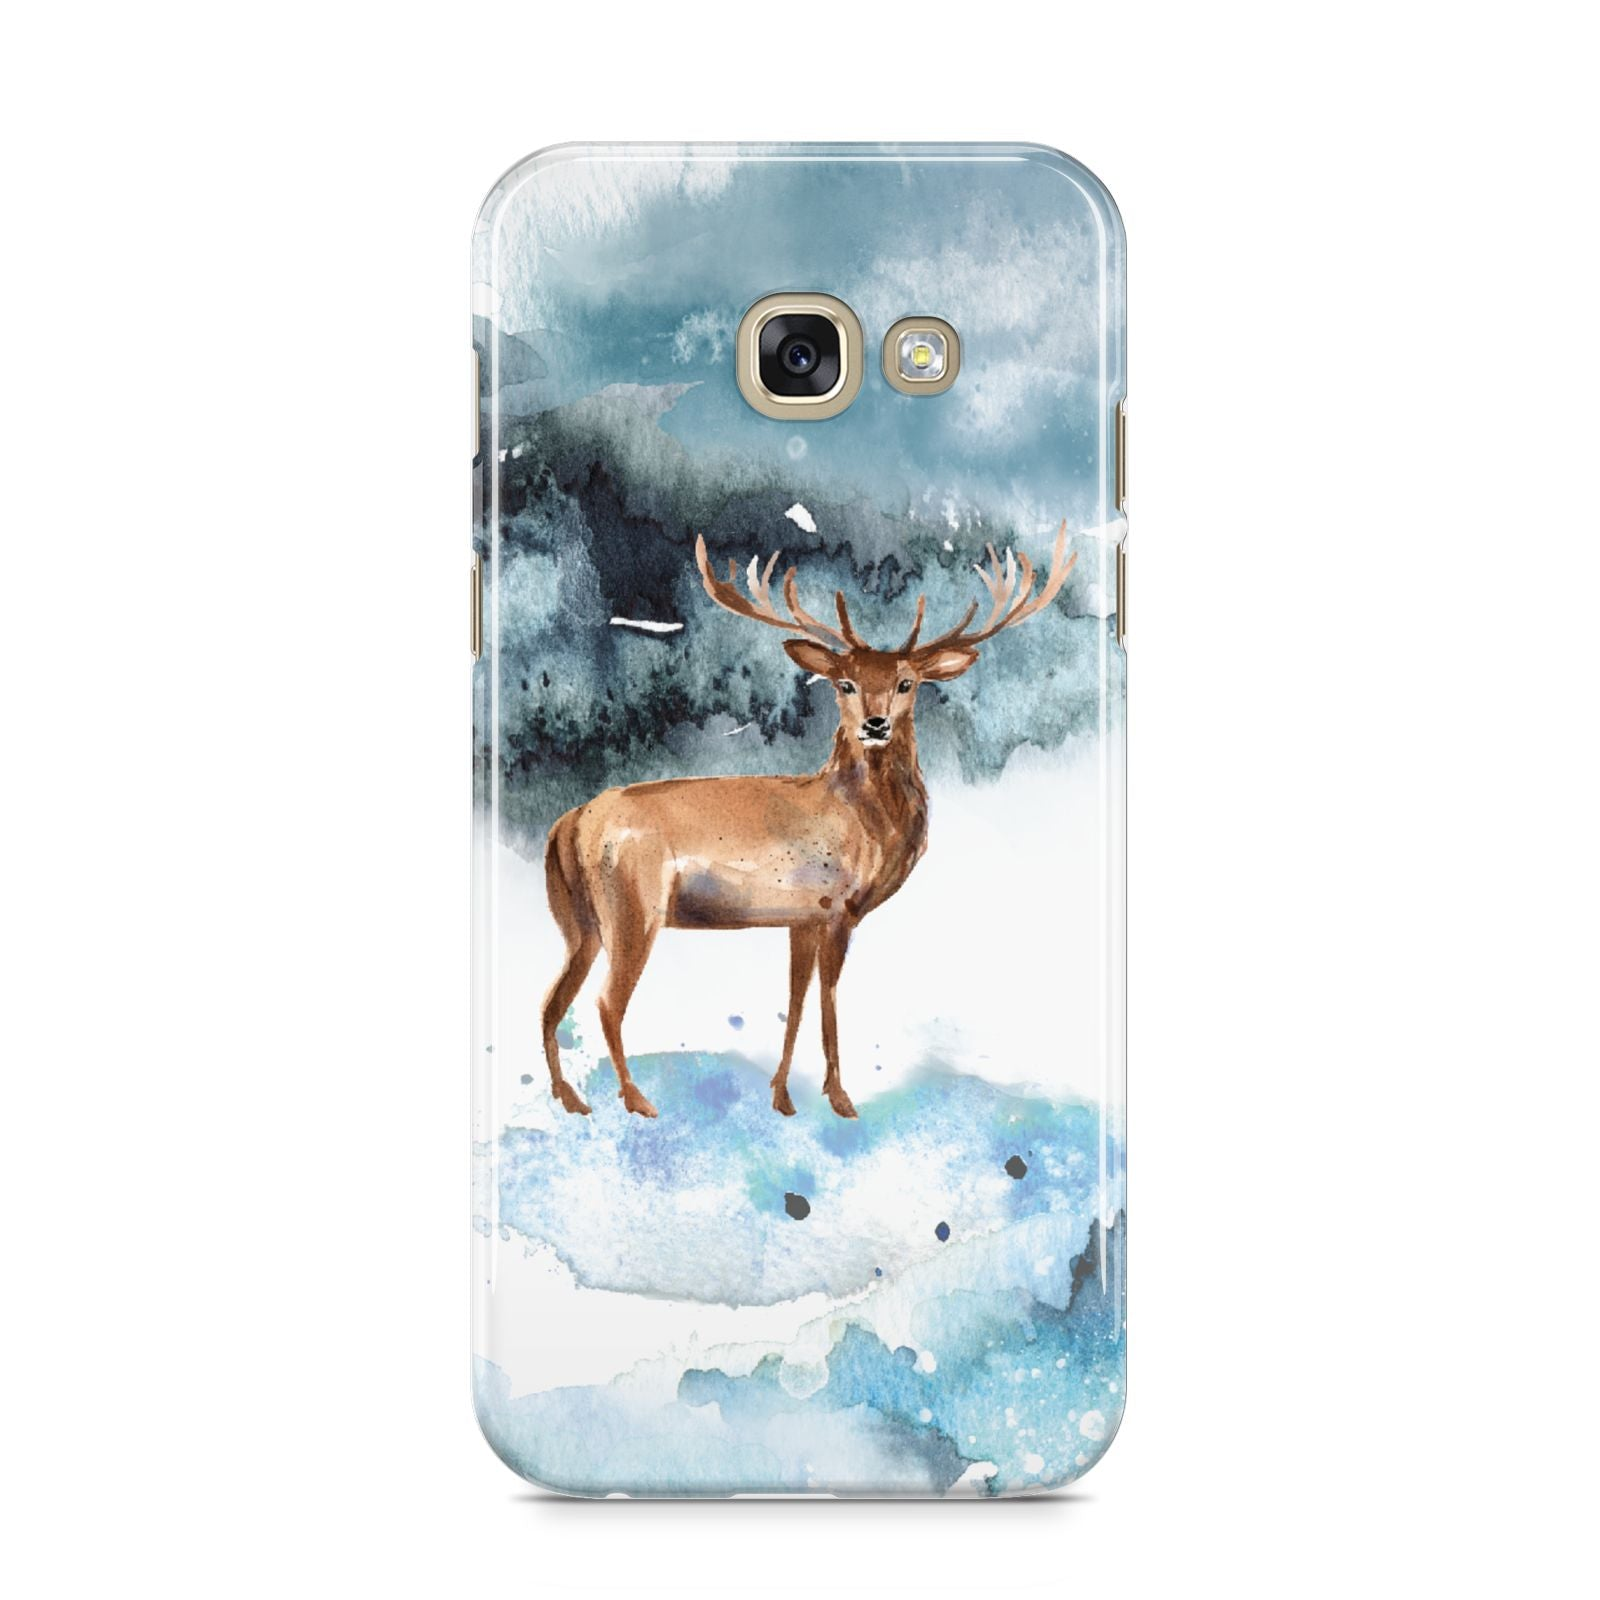 Christmas Winter Stag Samsung Galaxy A5 2017 Case on gold phone